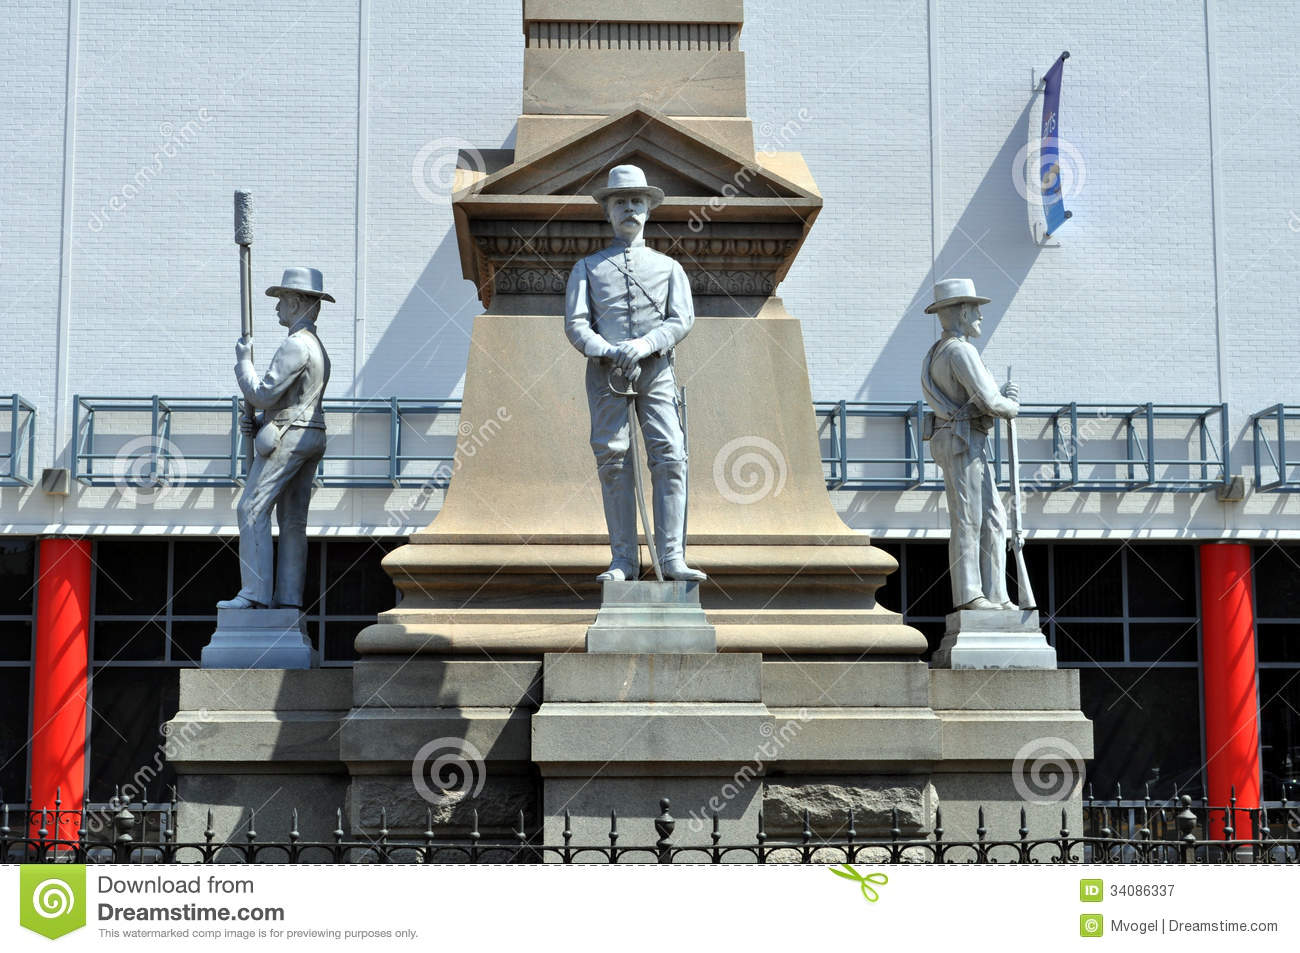 An image of the Confederate Monument Portsmouth, Virginia.